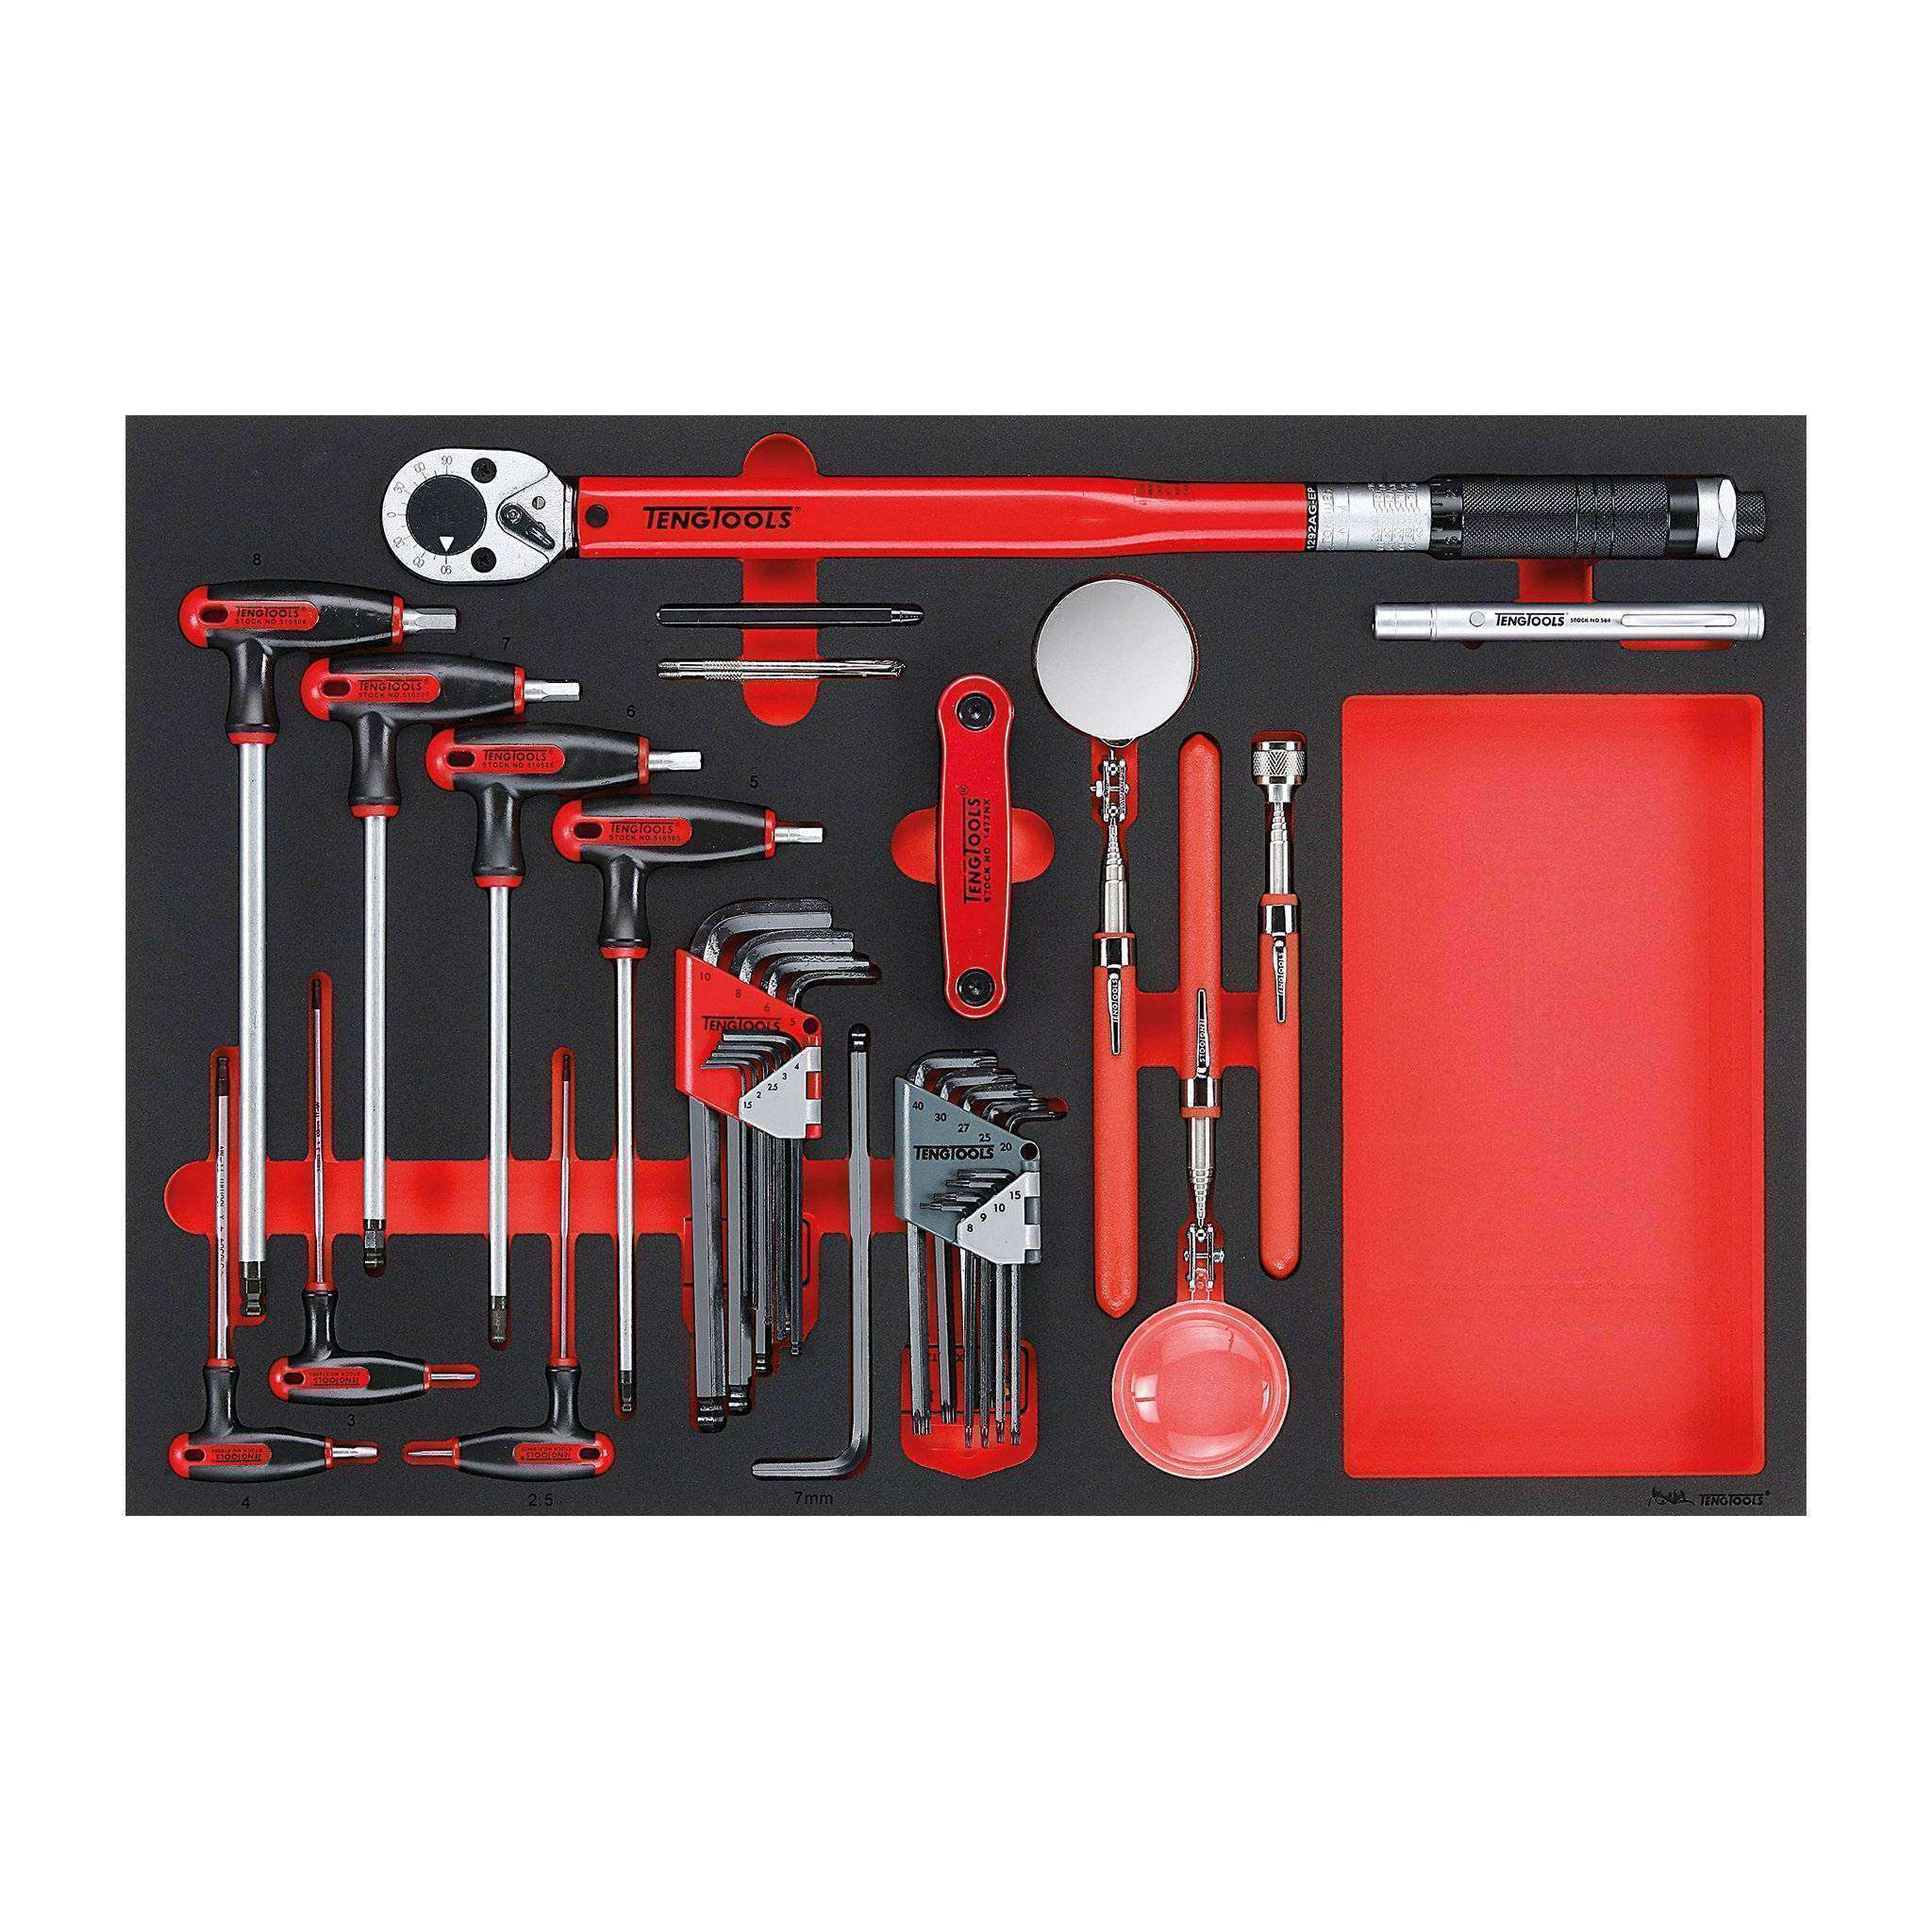 Teng Tools - 17 Piece Hex, Torque and Inspection Set in EVA - TEN-O-TTEX17 - Teng Tools USA